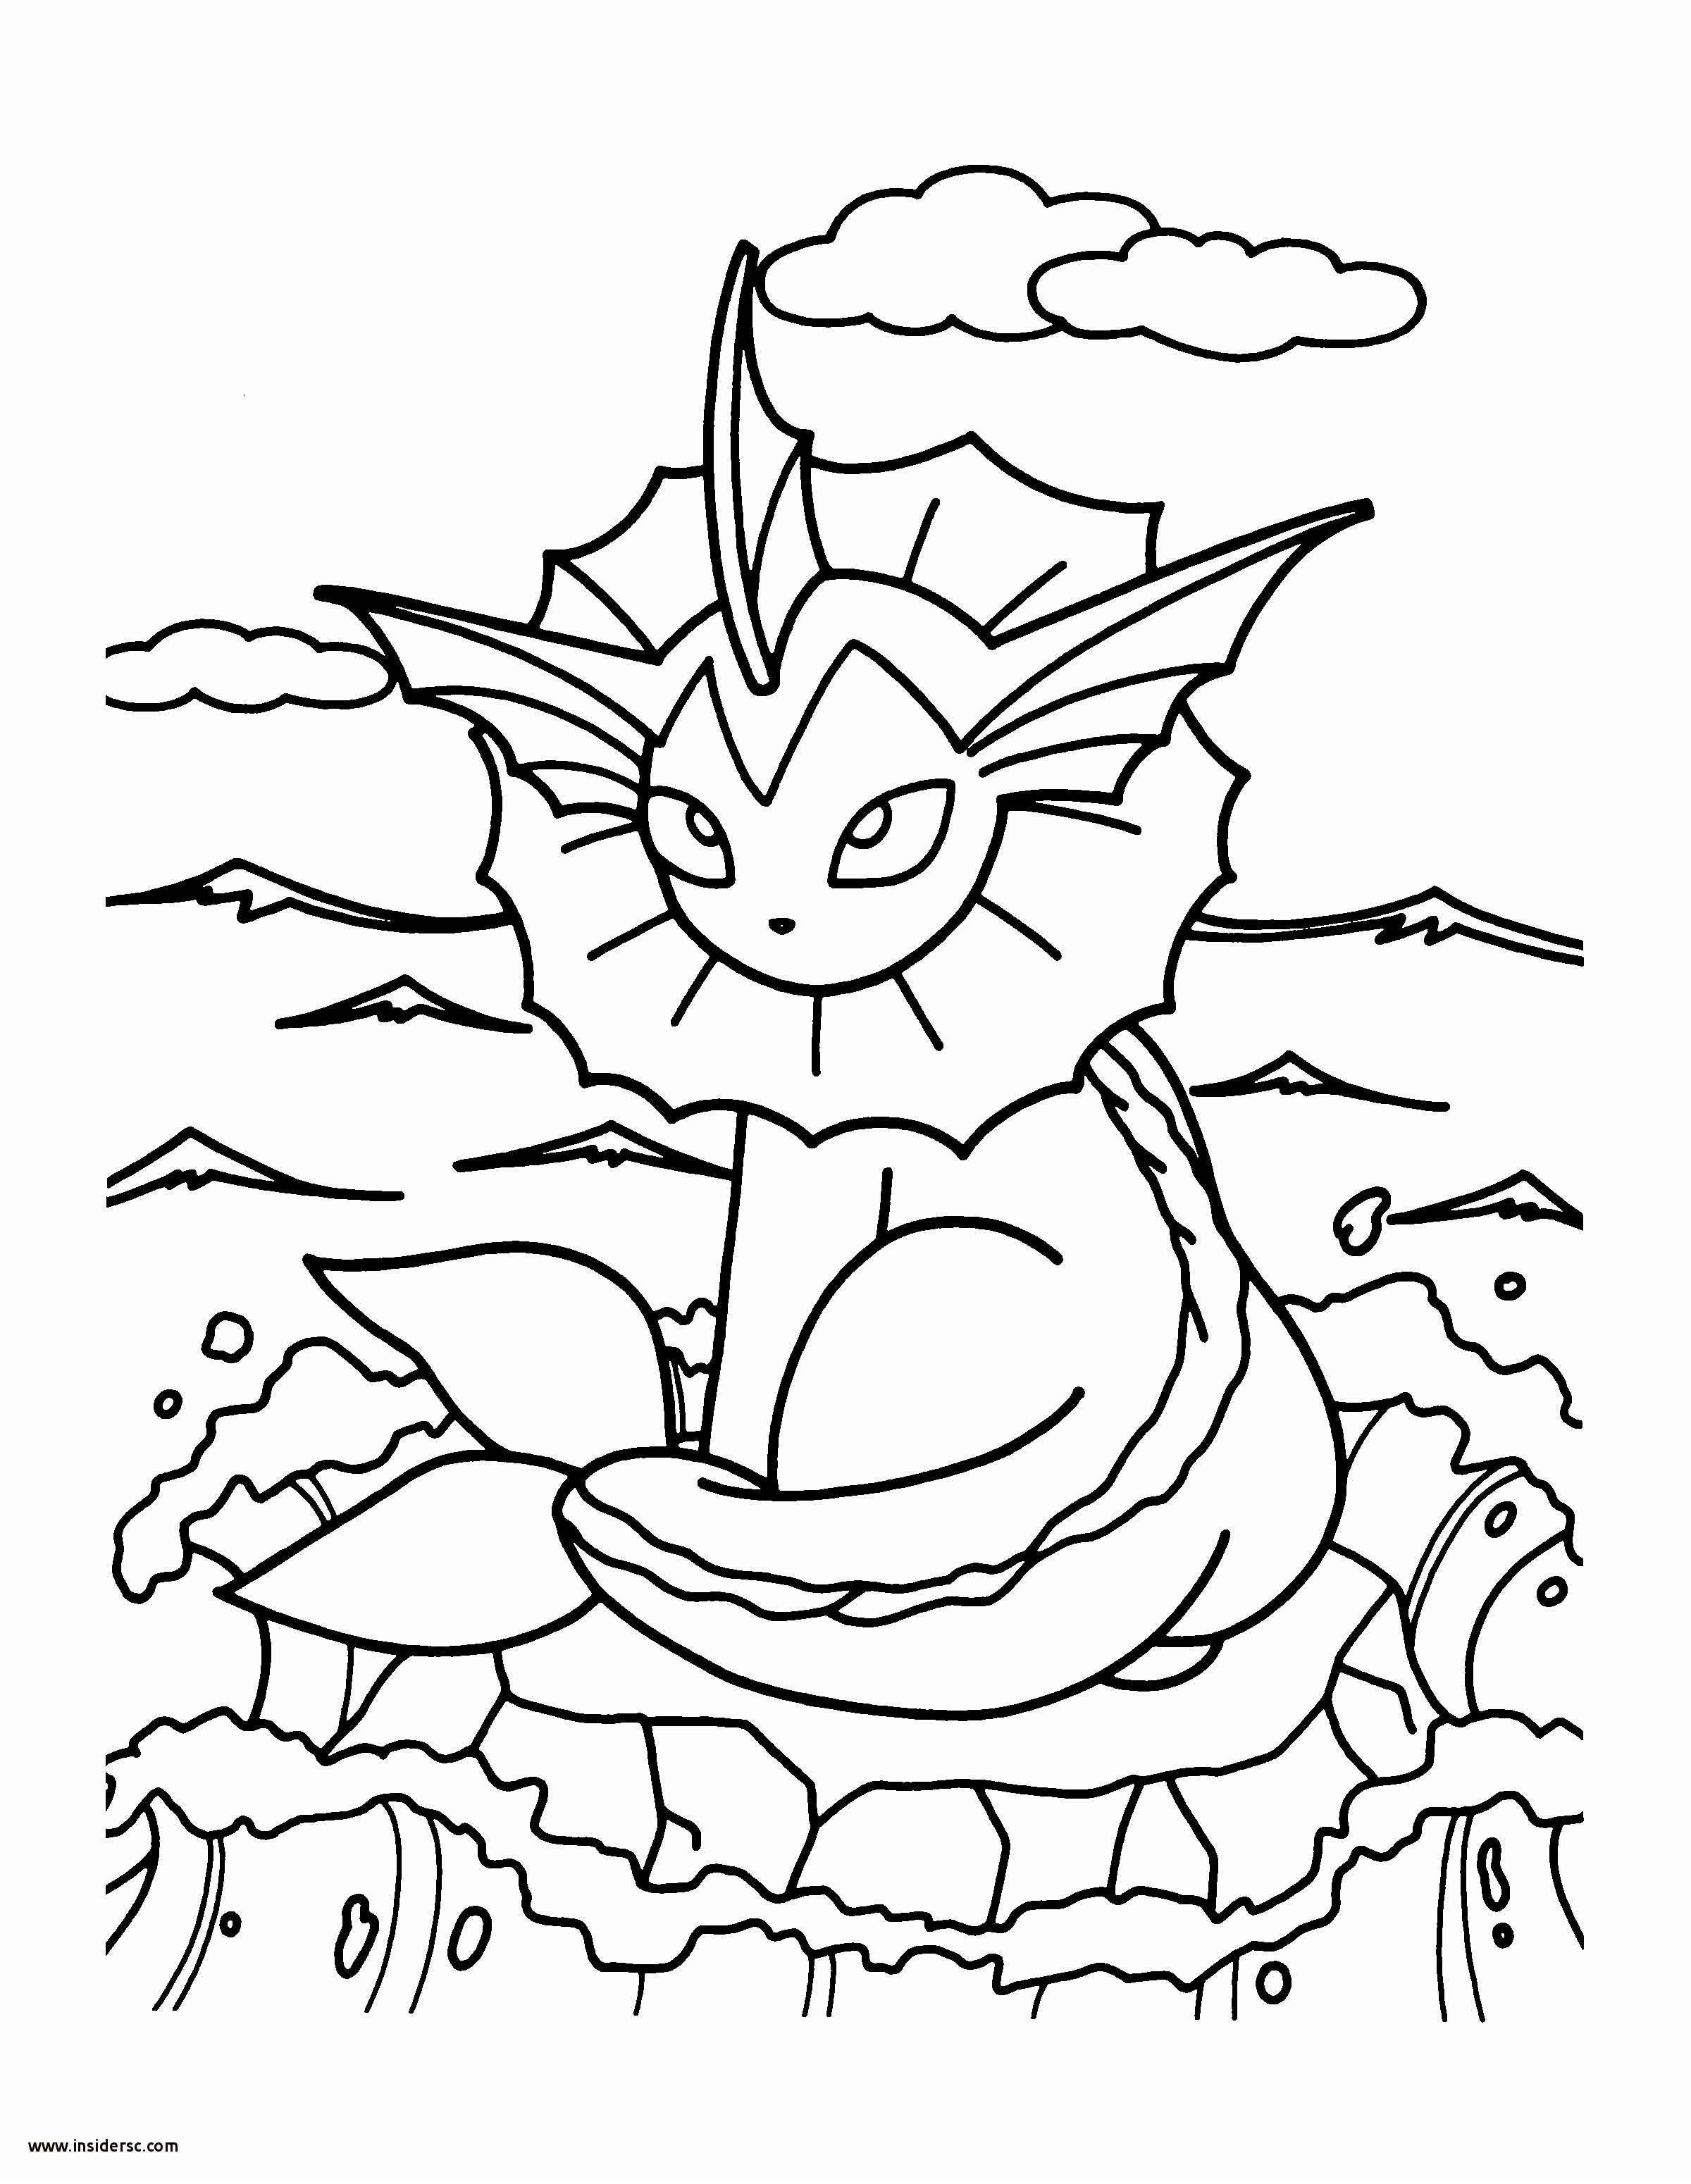 Liberty Bell Coloring Page Lovely Quiver Coloring Pages In